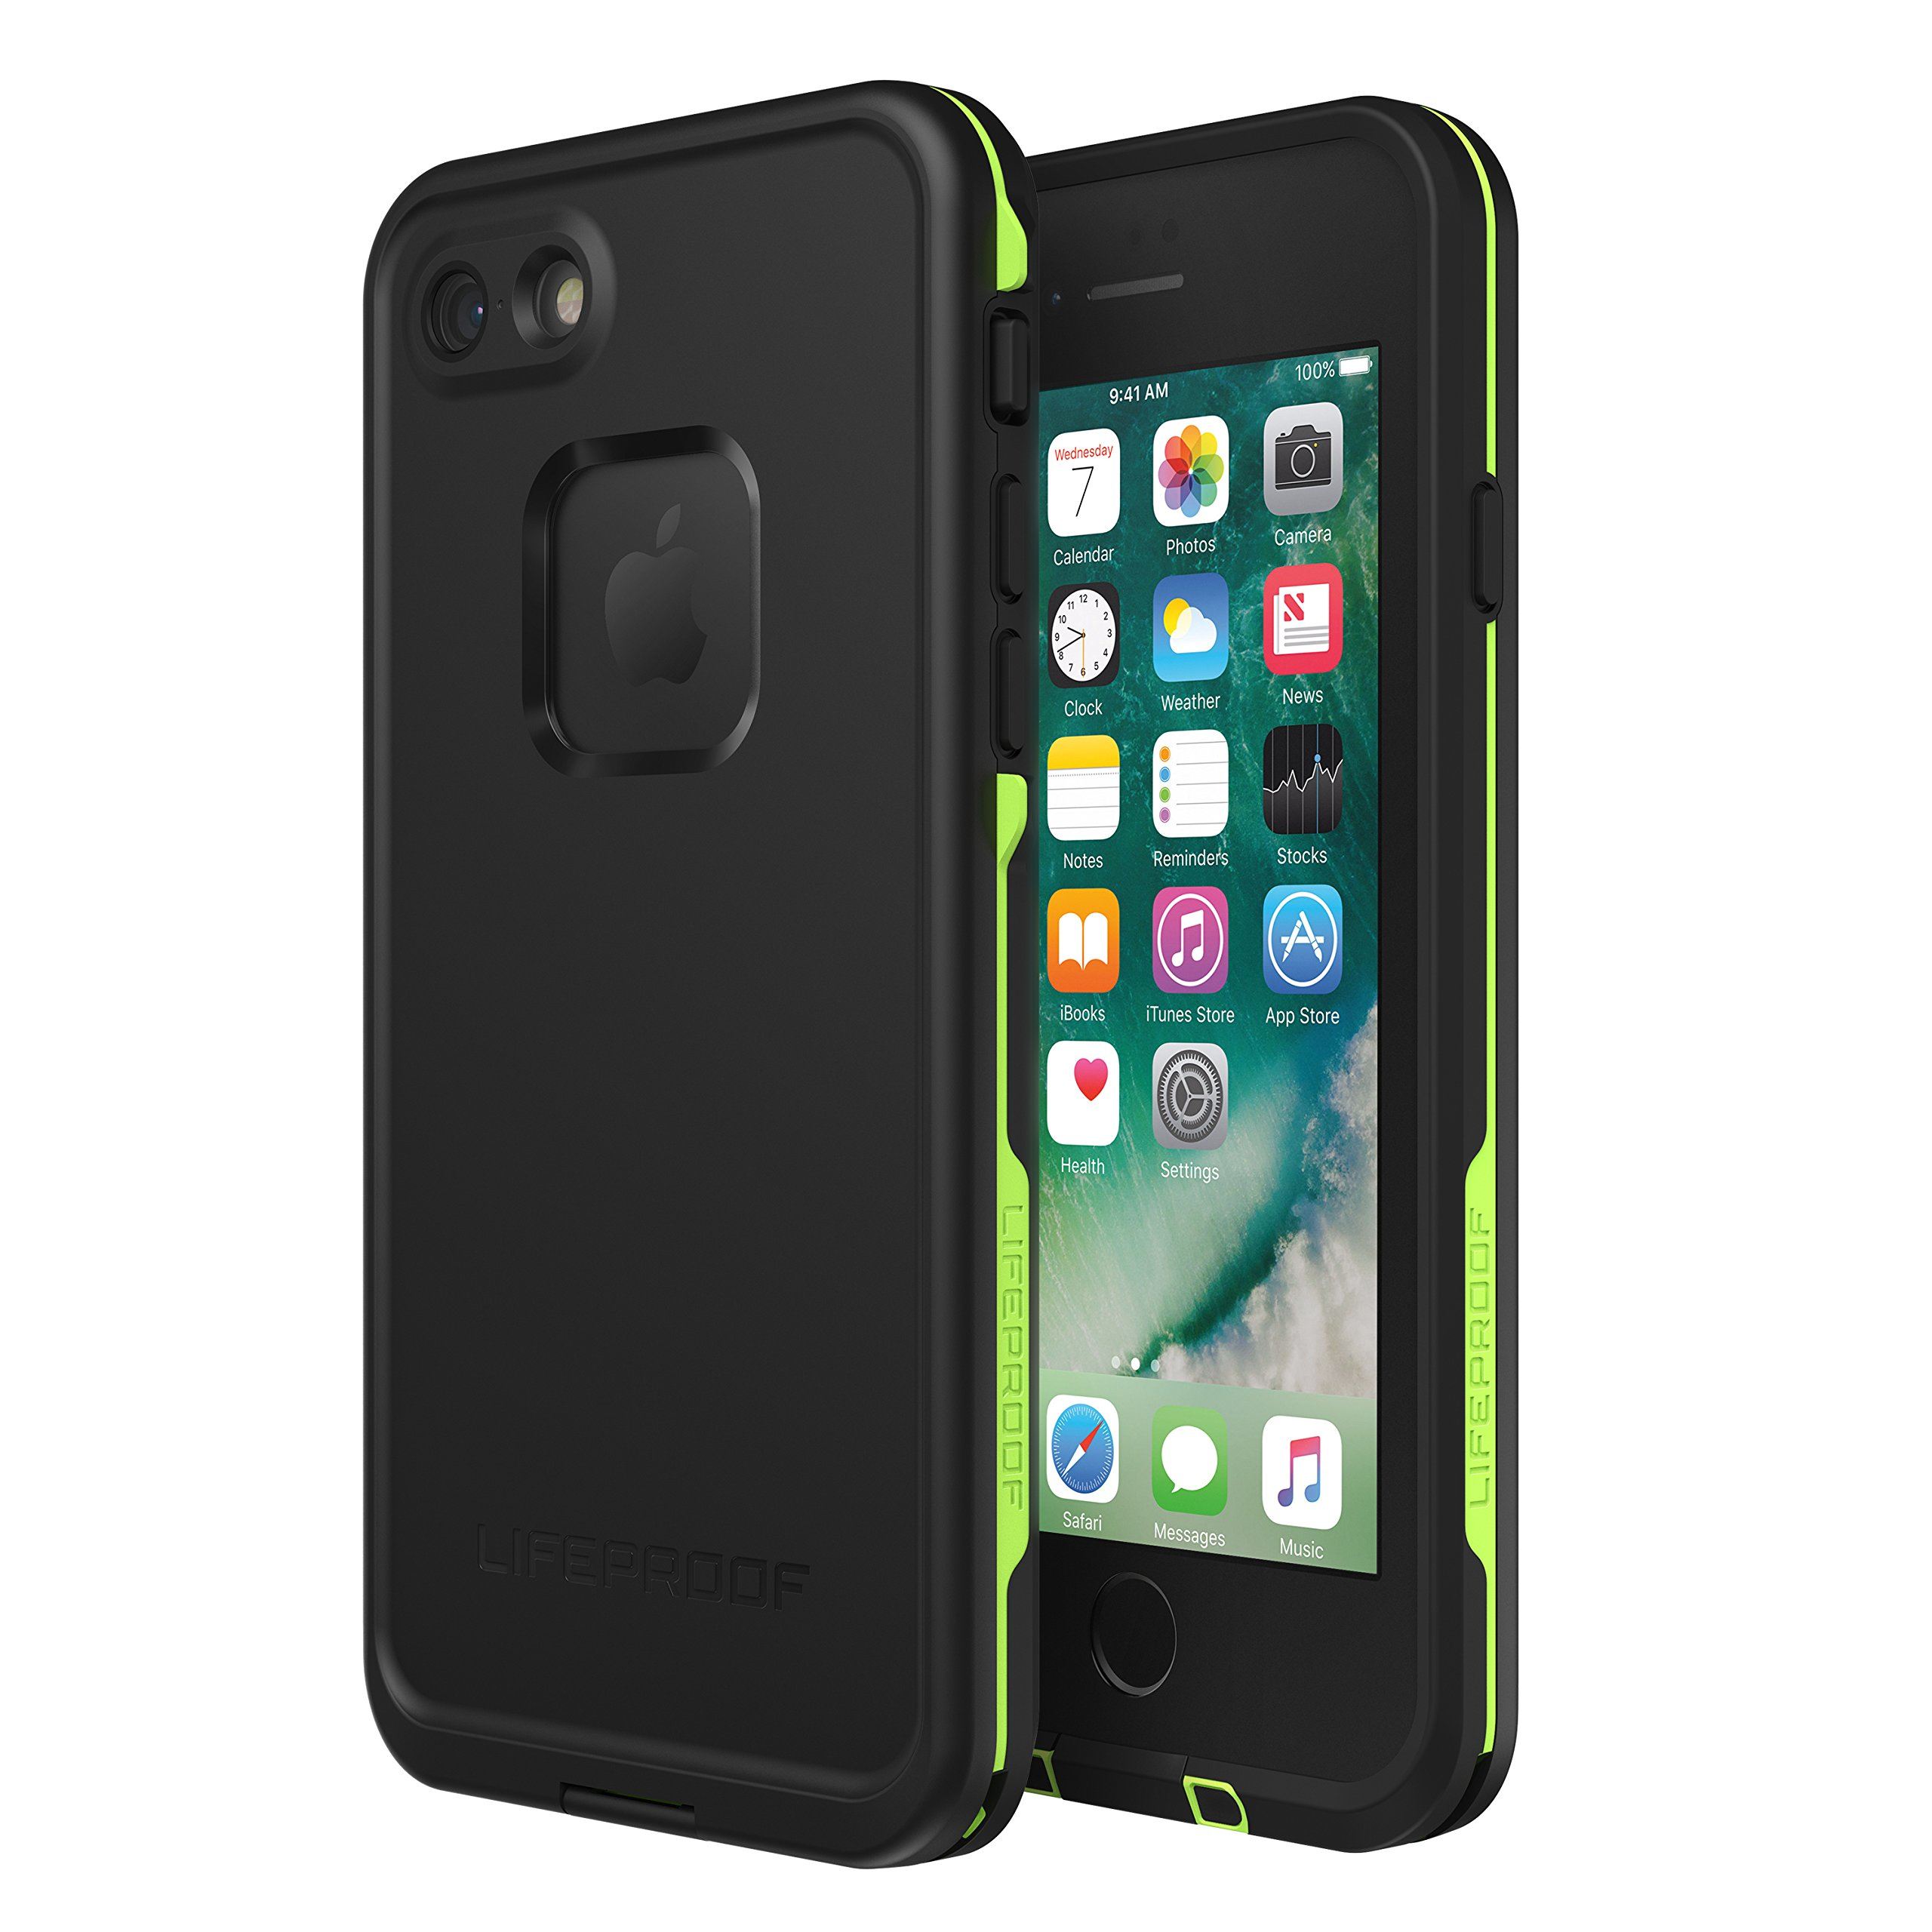 Lifeproof FRĒ SERIES Waterproof Case for iPhone 8 & 7 (ONLY) - Retail Packaging - NIGHT LITE (BLACK/LIME)